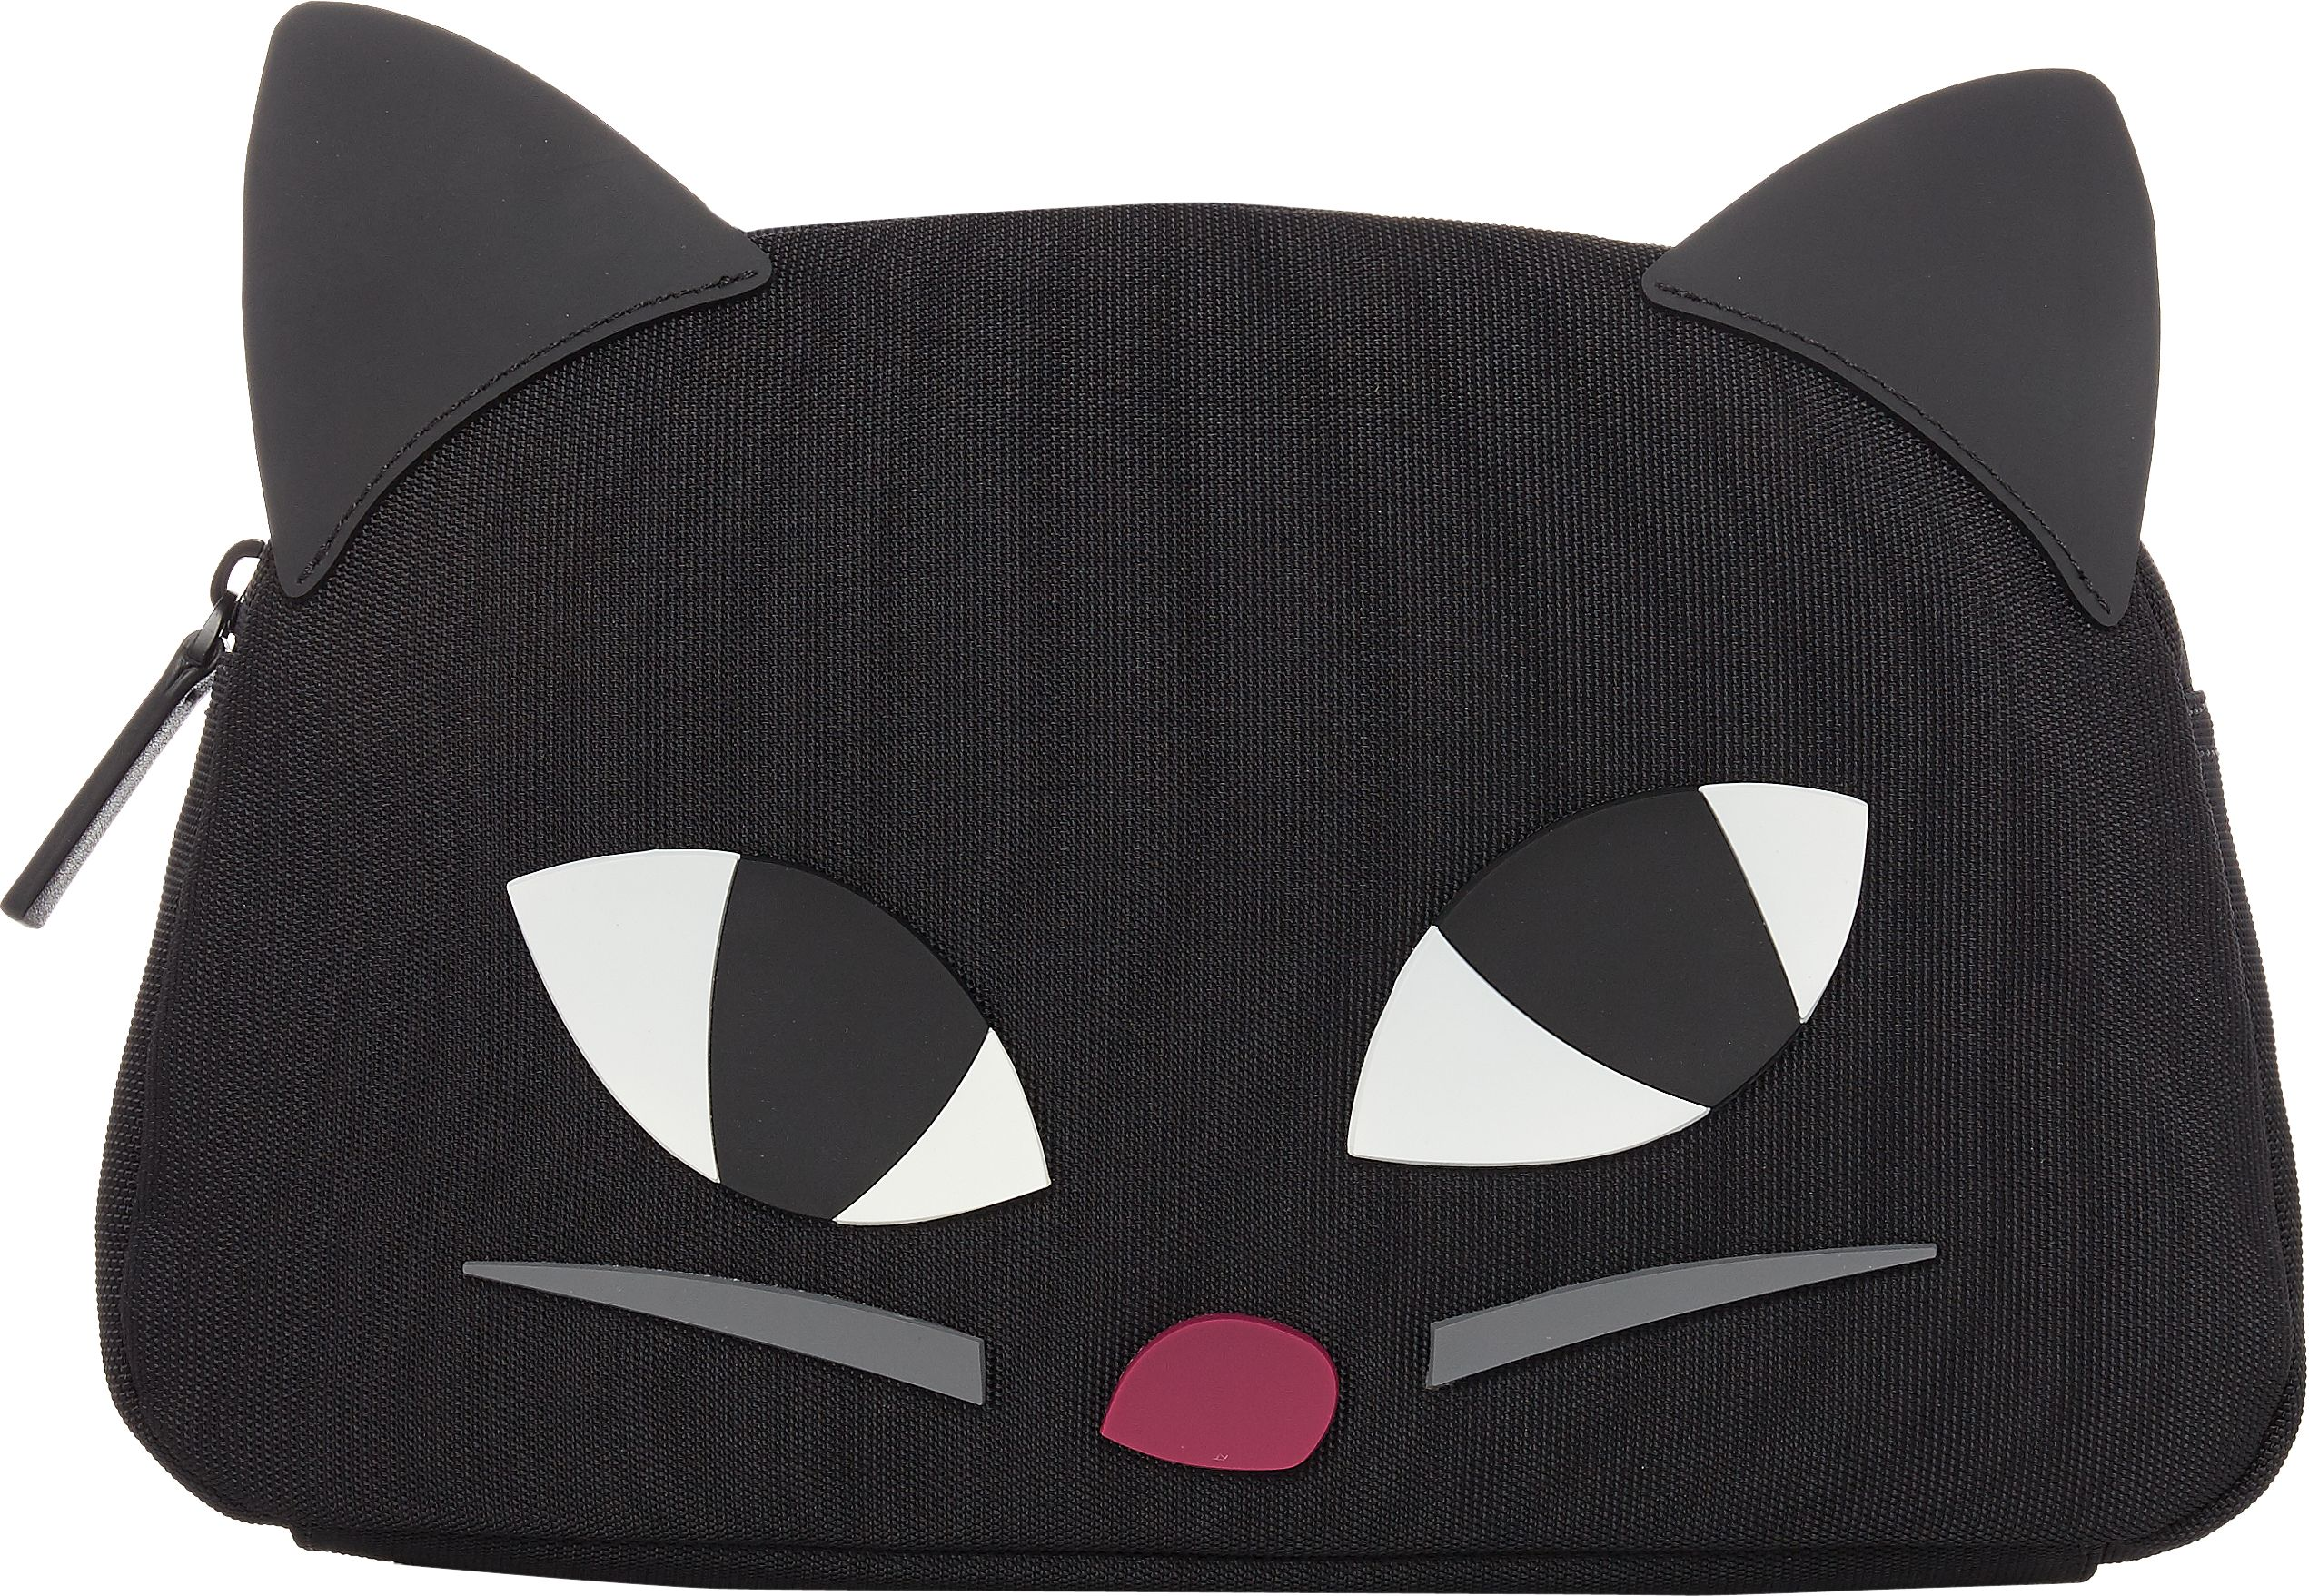 Lulu Guinness Kooky cat crescent large pouch, Black